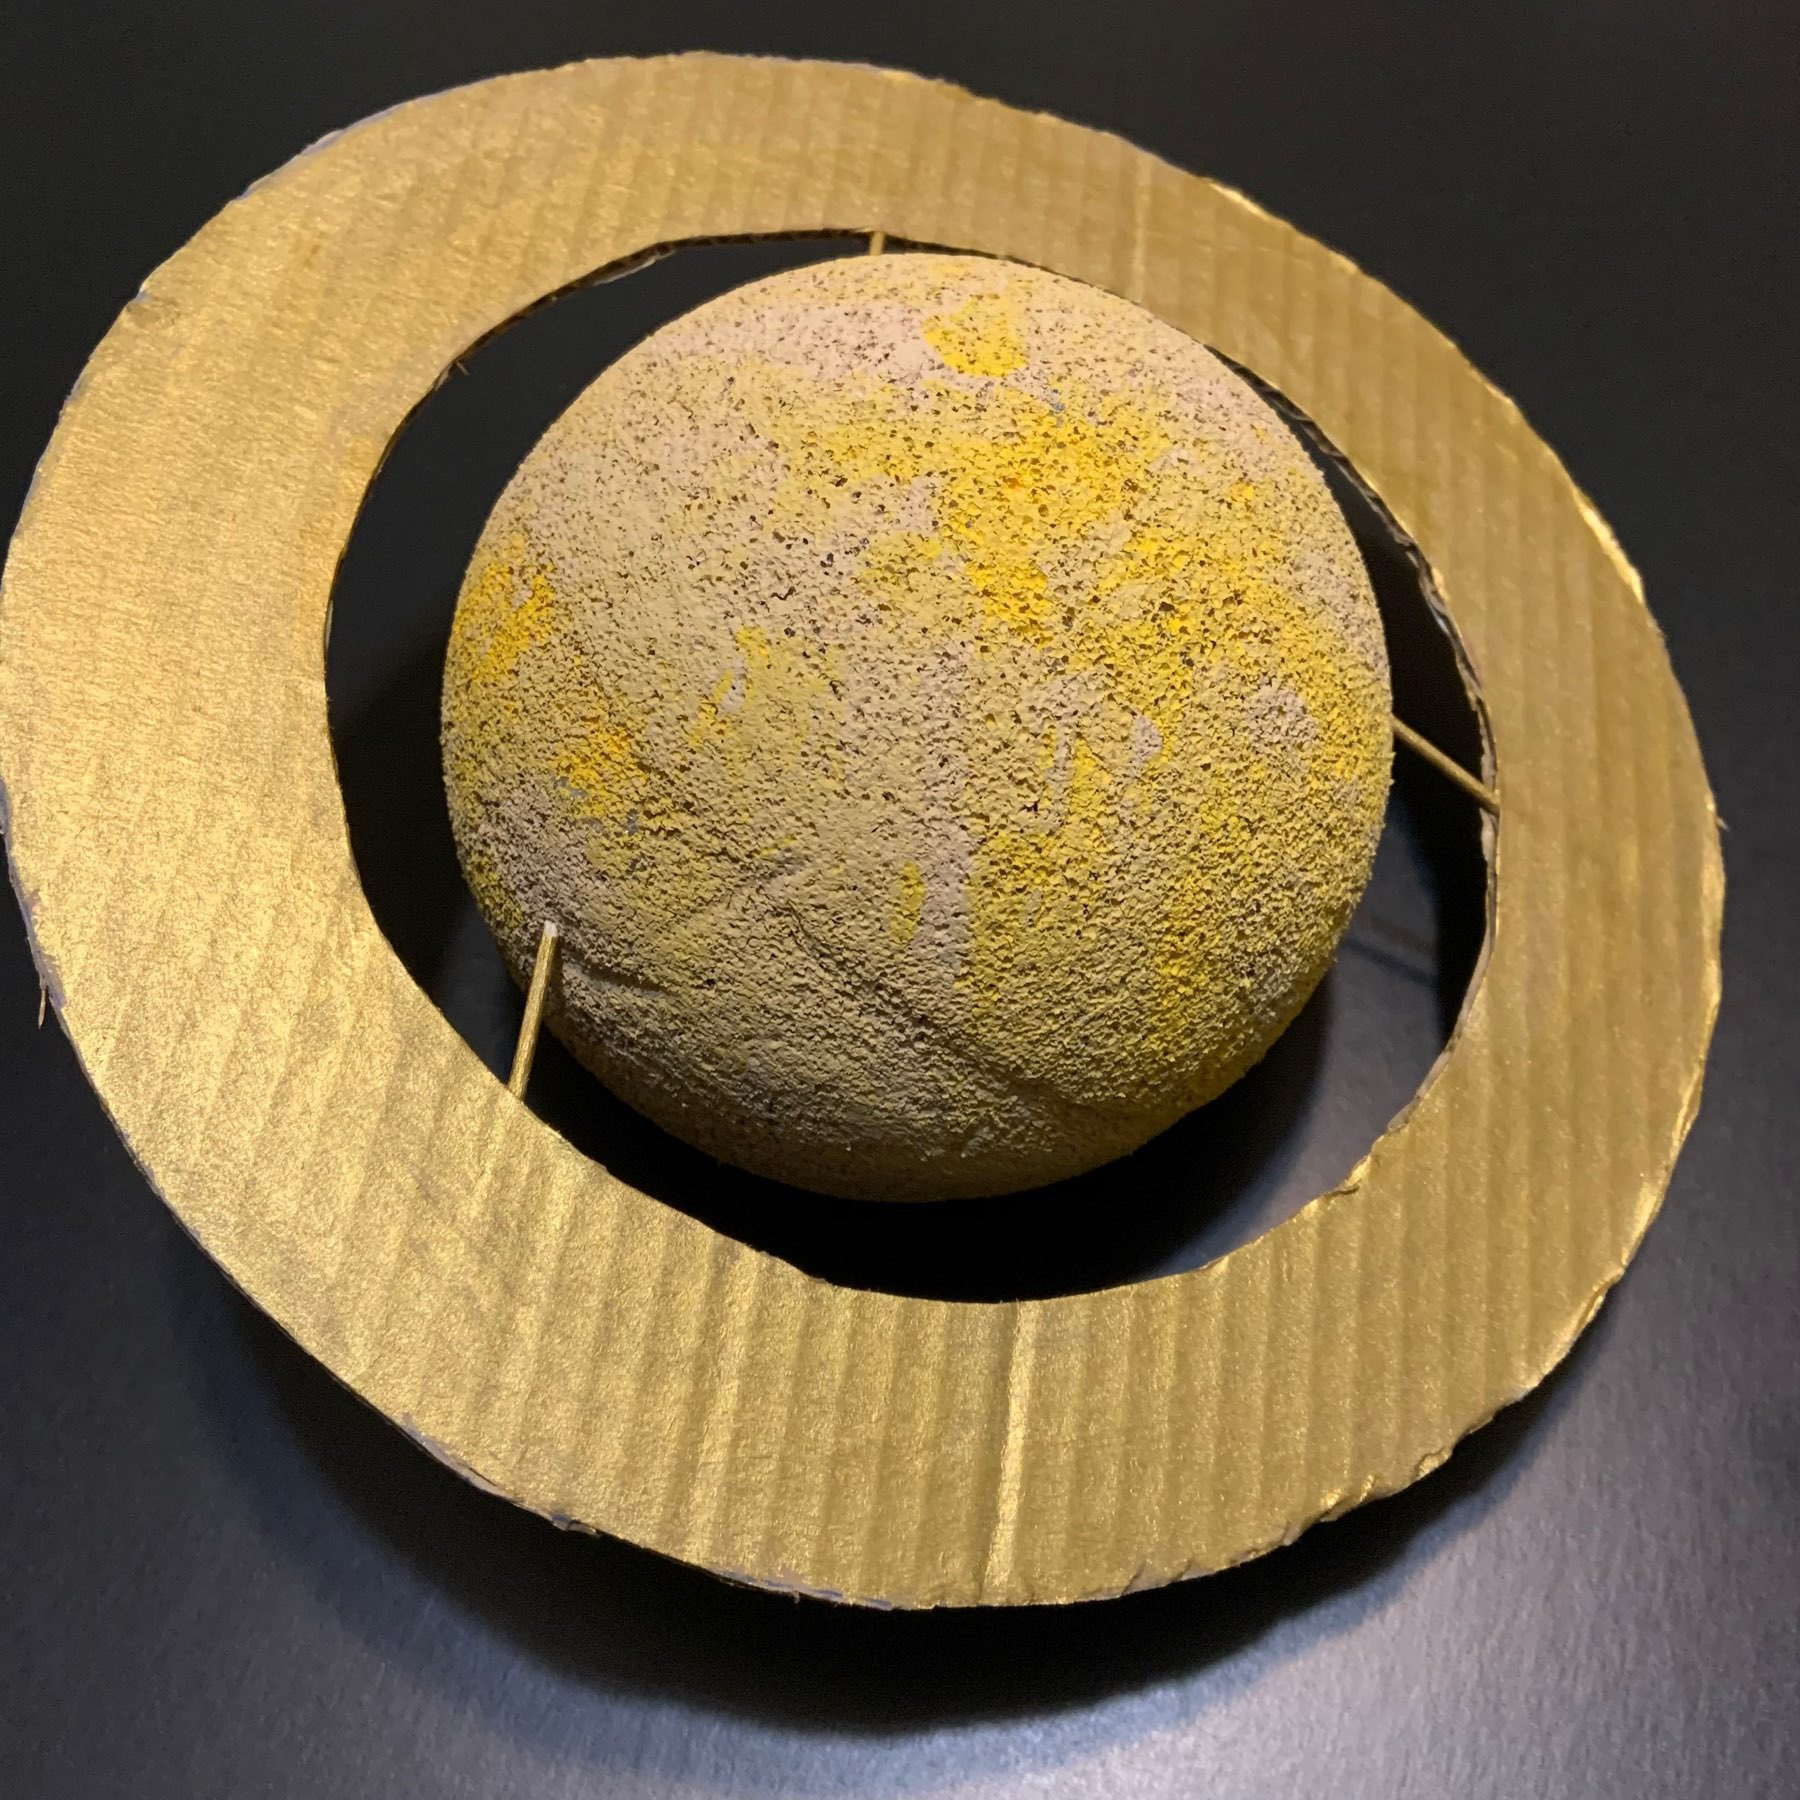 A simple model of thr planet Saturn